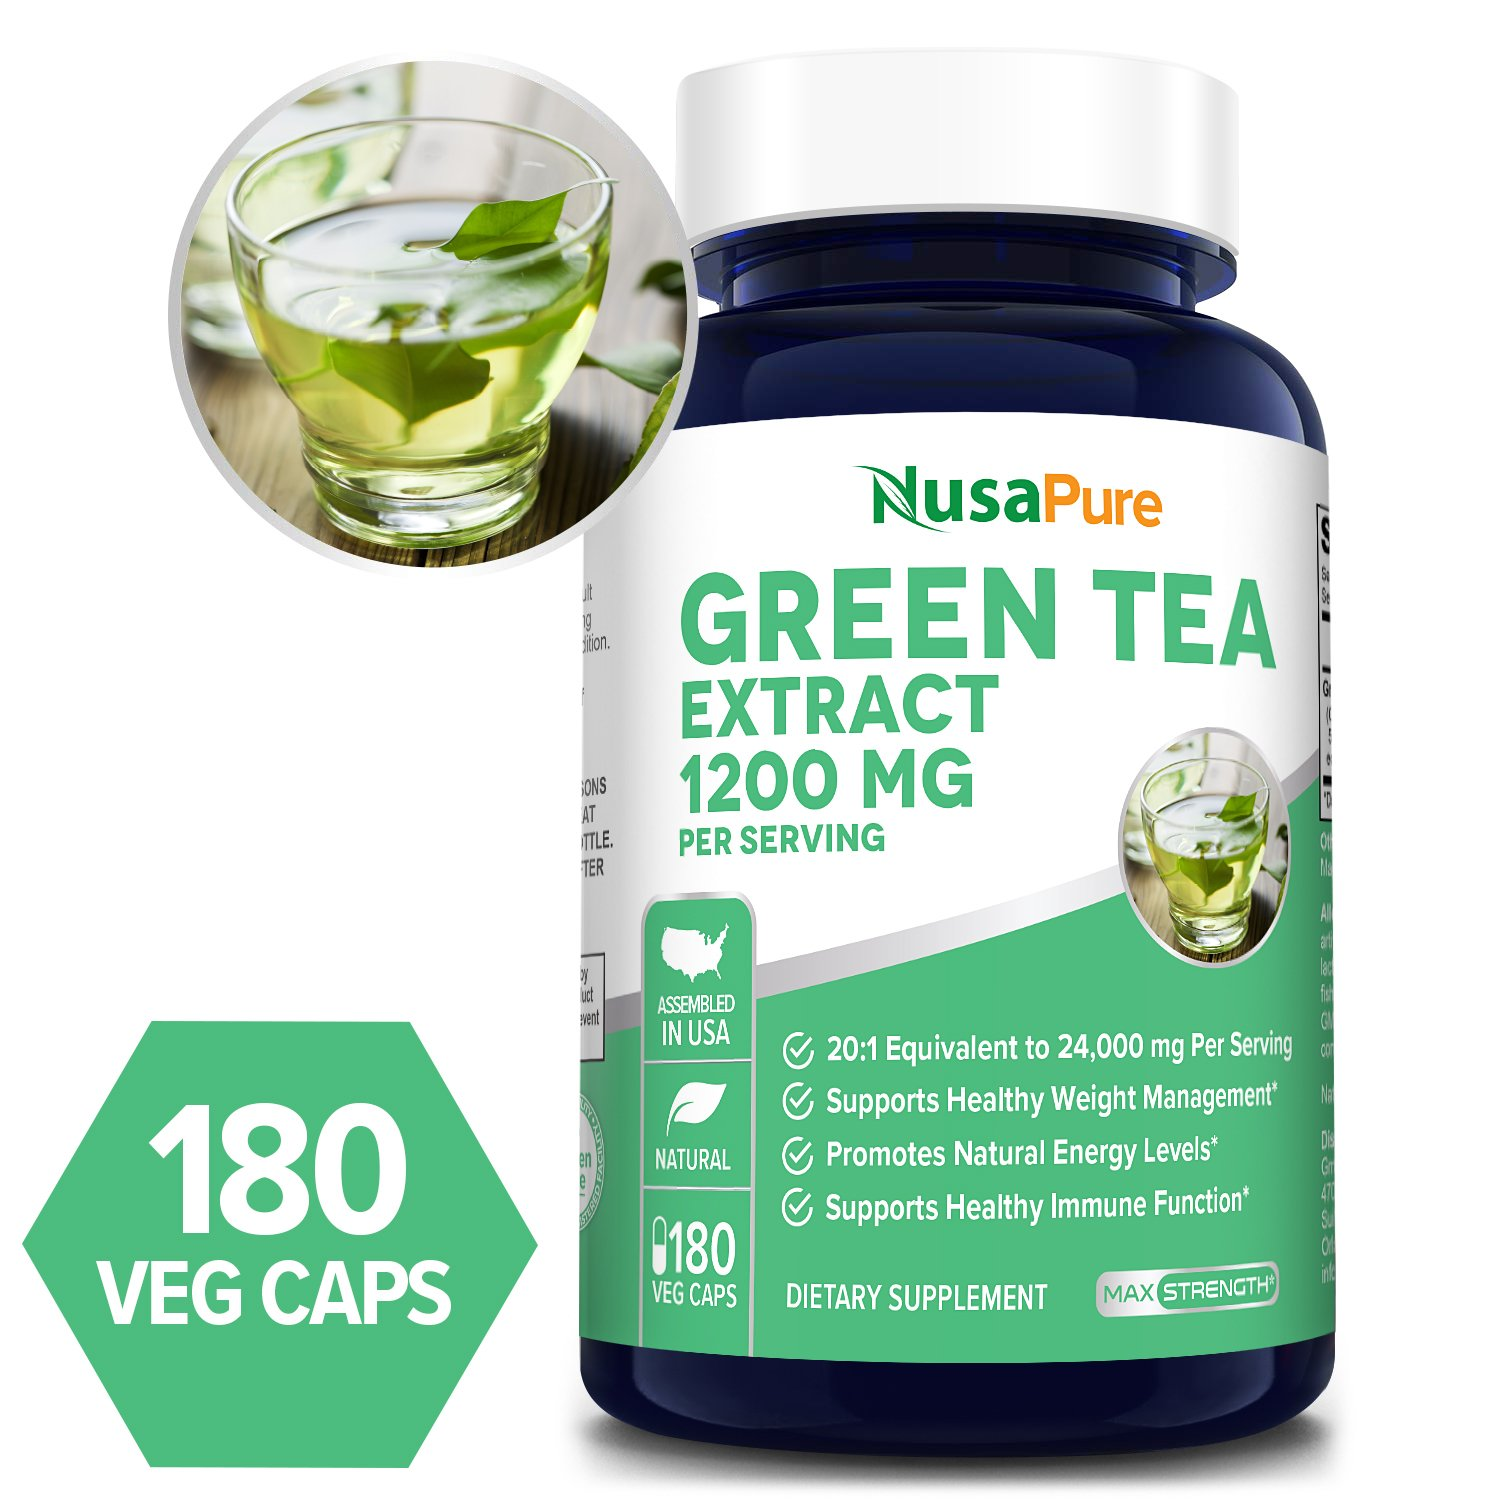 Green Tea Extract 1200 mg - 180 Veg Caps (100% Vegetarian, Non-GMO & Gluten-free)